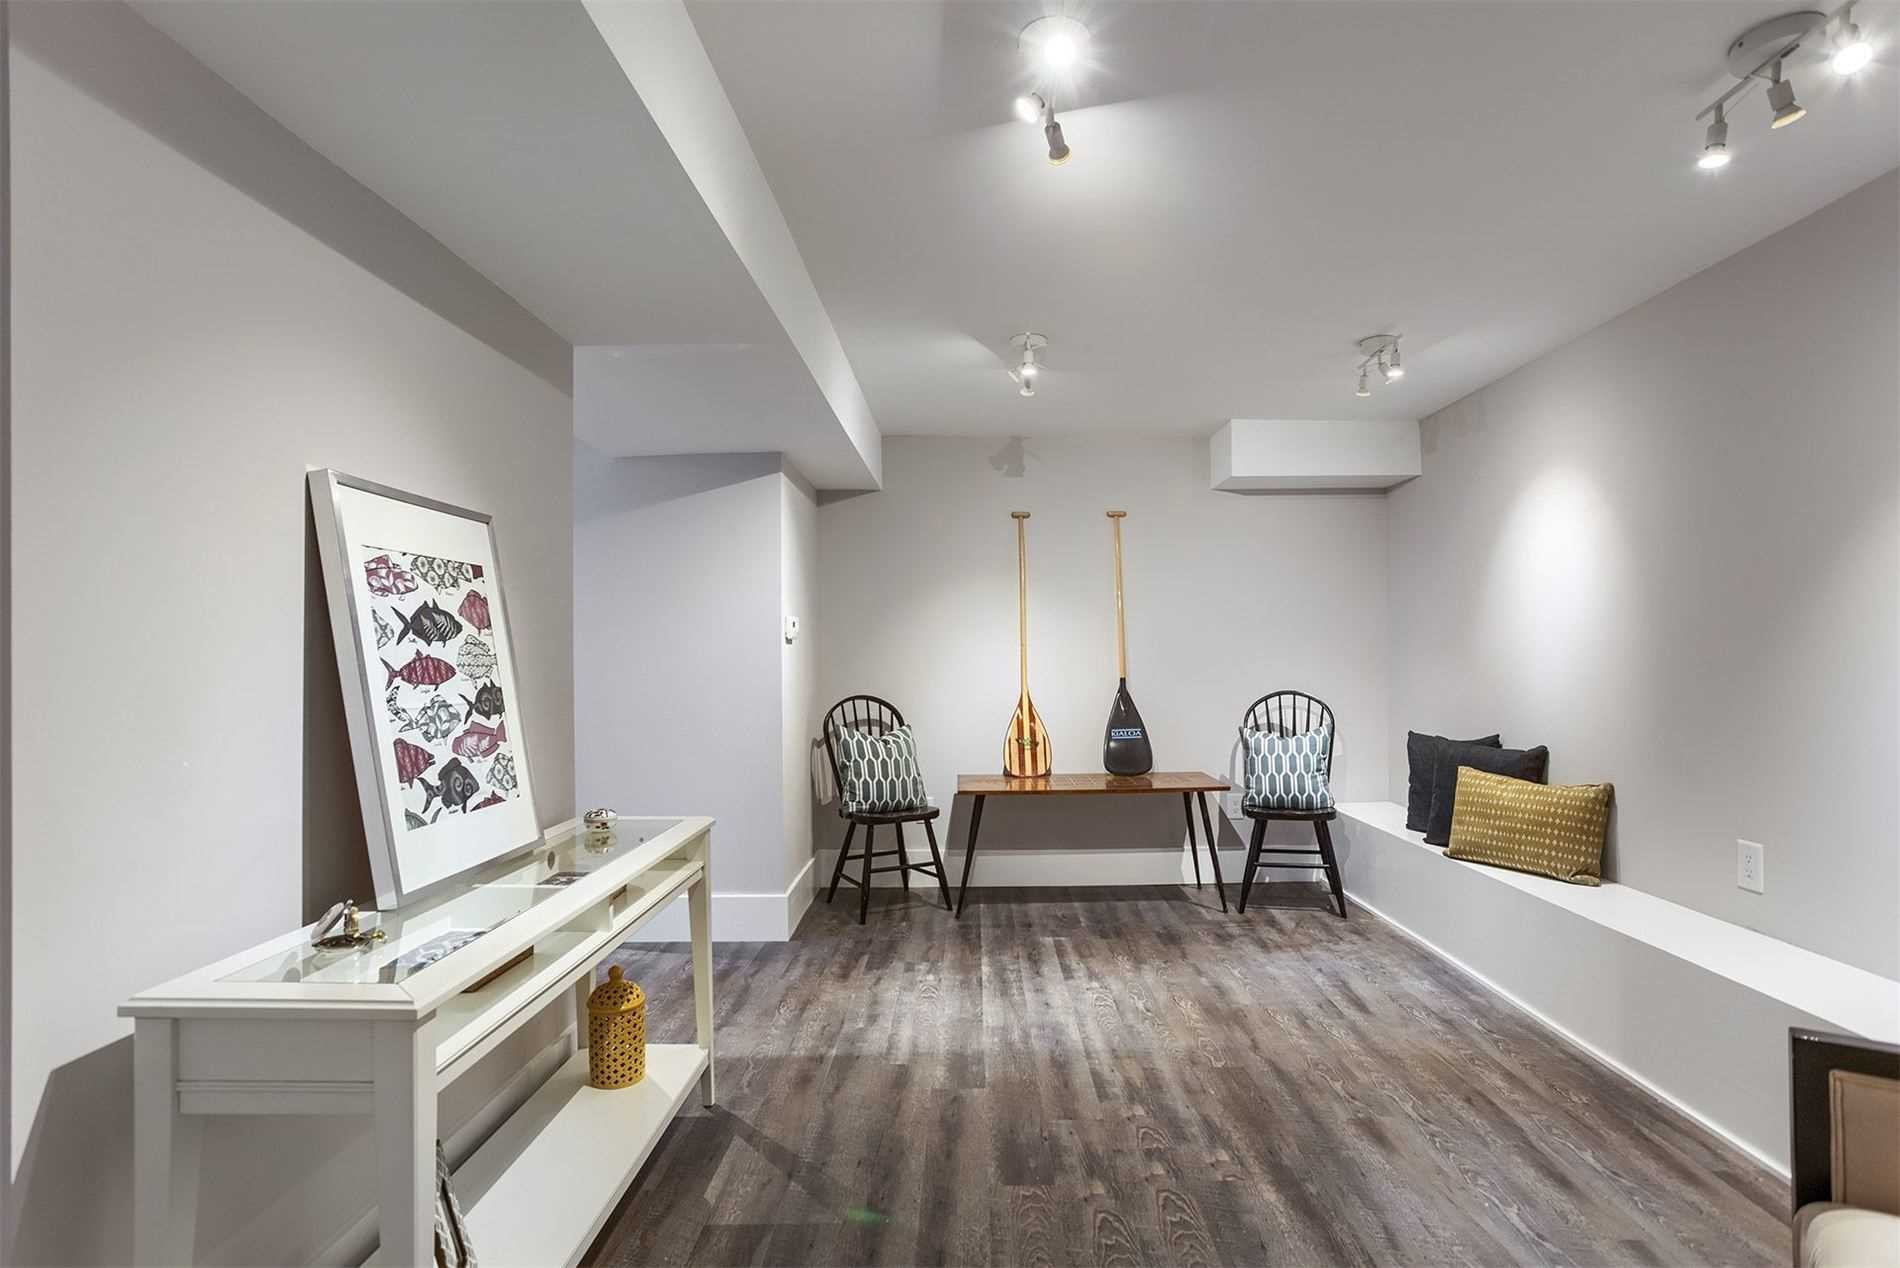 Photo 3: Photos: 53 Pearson Avenue in Toronto: Roncesvalles House (Other) for lease (Toronto W01)  : MLS®# W4816830